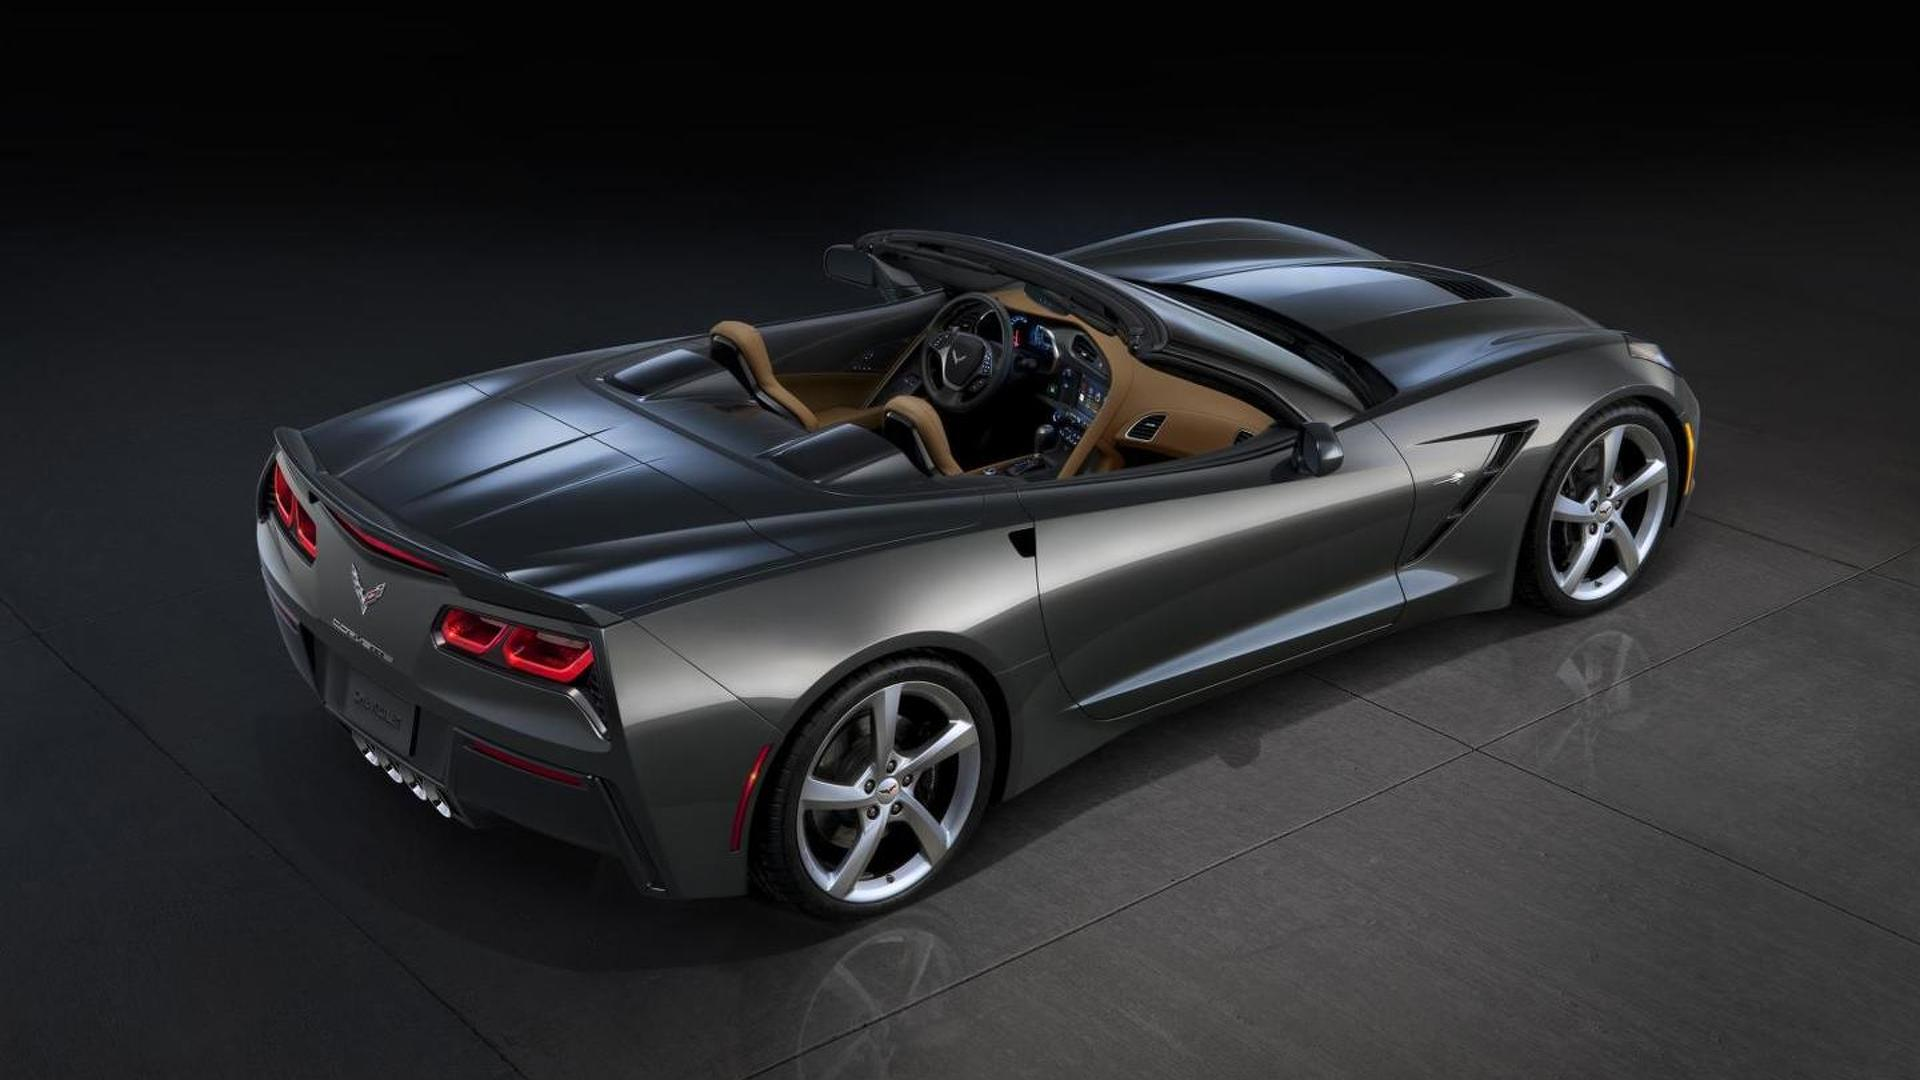 2014 Corvette Stingray to be limited to top dealerships at launch - report